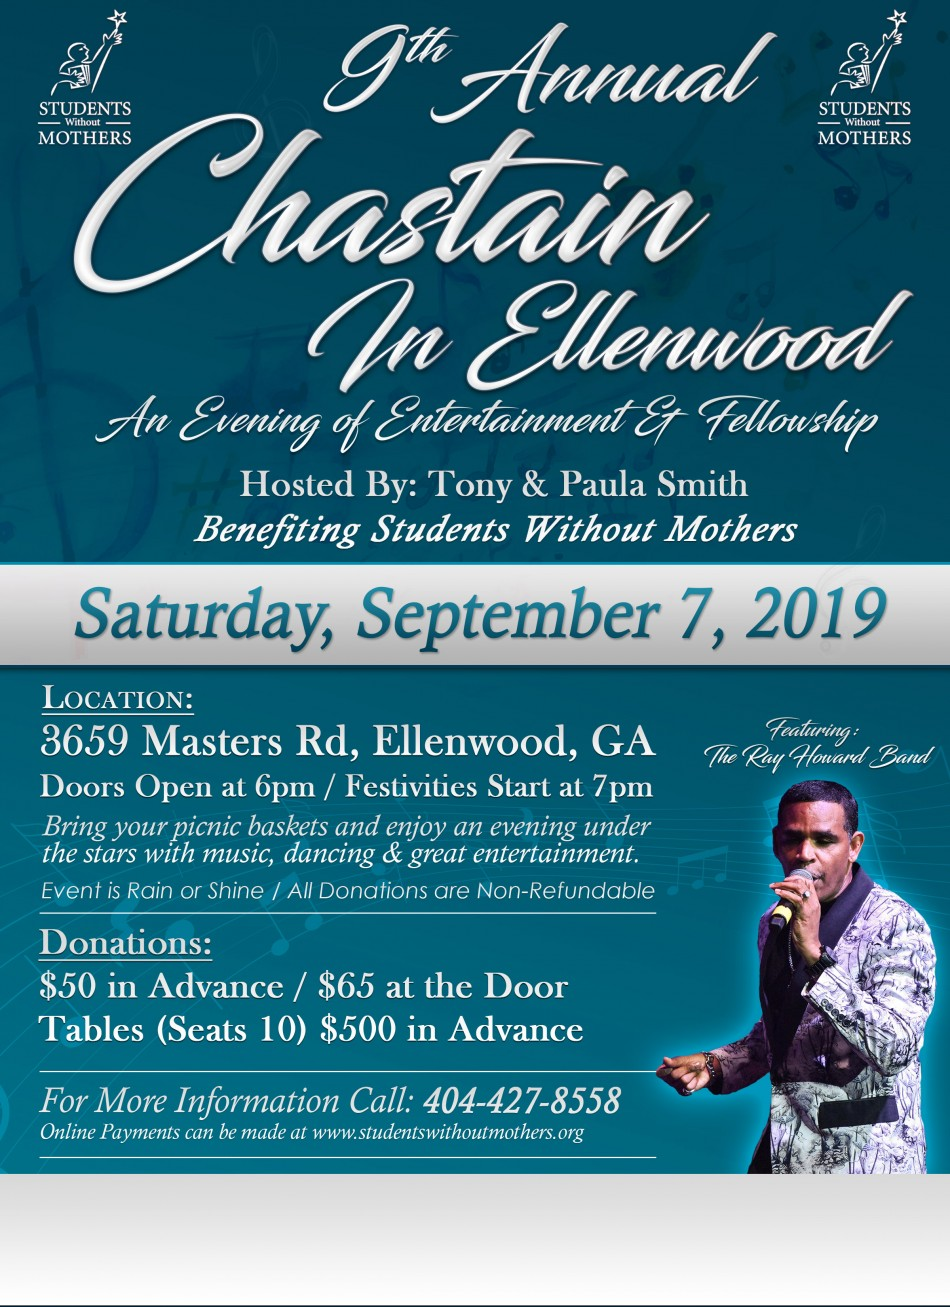 Chastain in Ellenwood